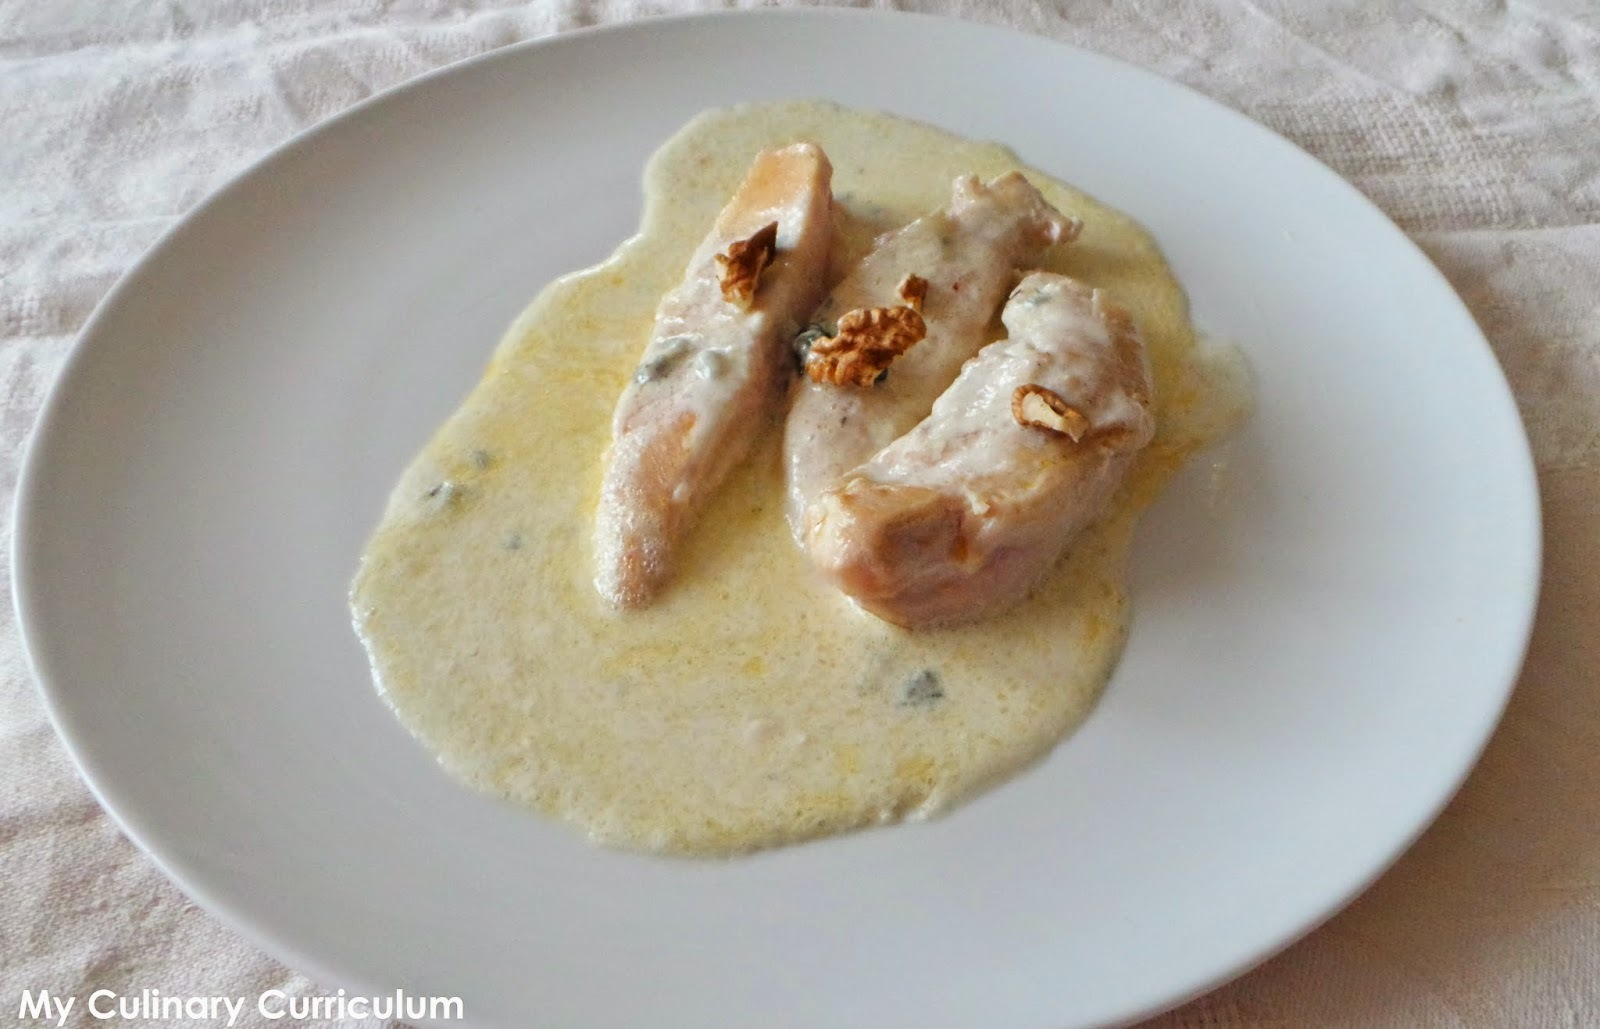 Poulet au roquefort et aux noix (Chicken with Roquefort and walnuts)